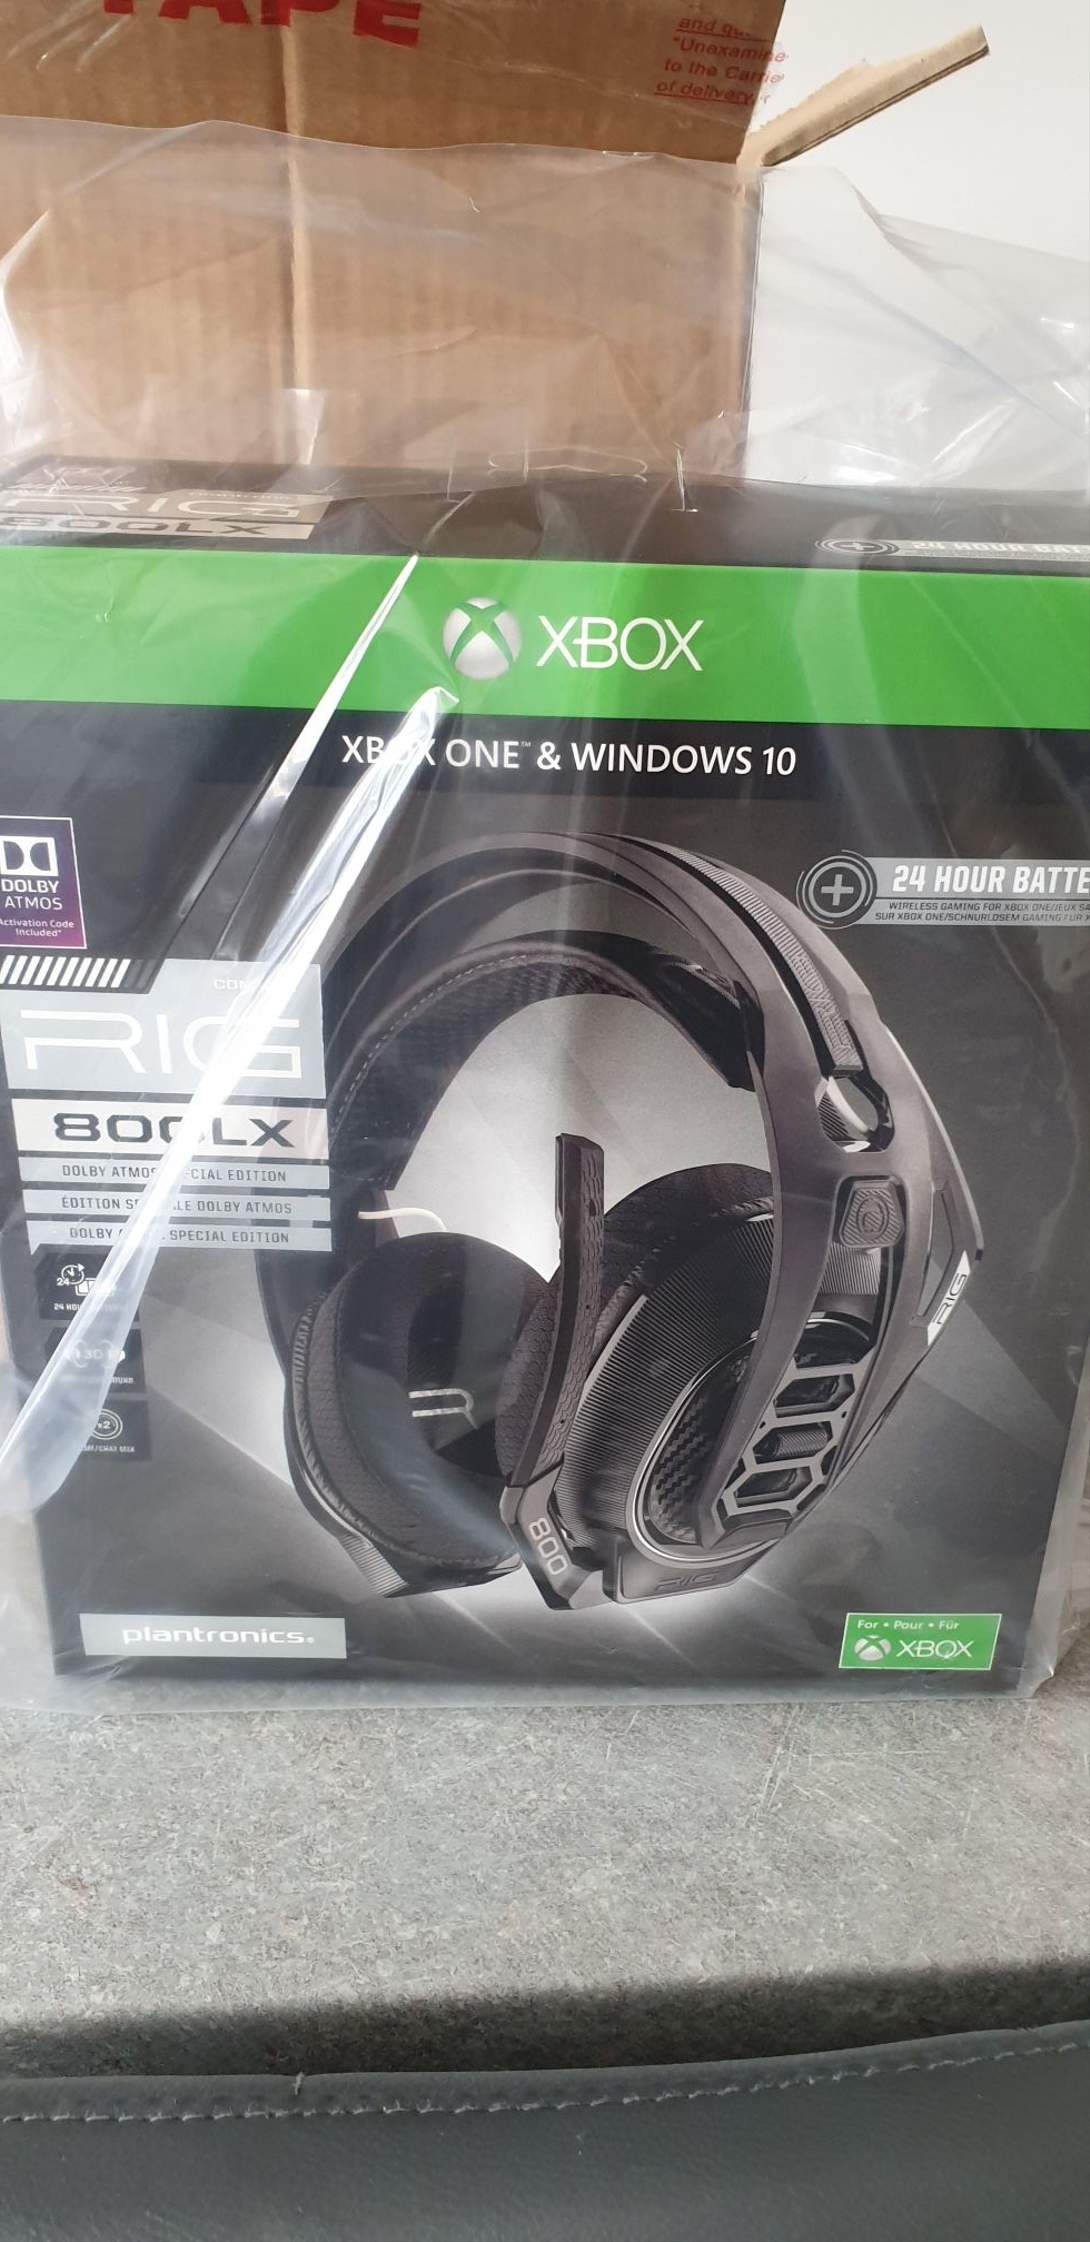 RIG 800 LX headset, £89 99 @ Very! Free C&C - hotukdeals